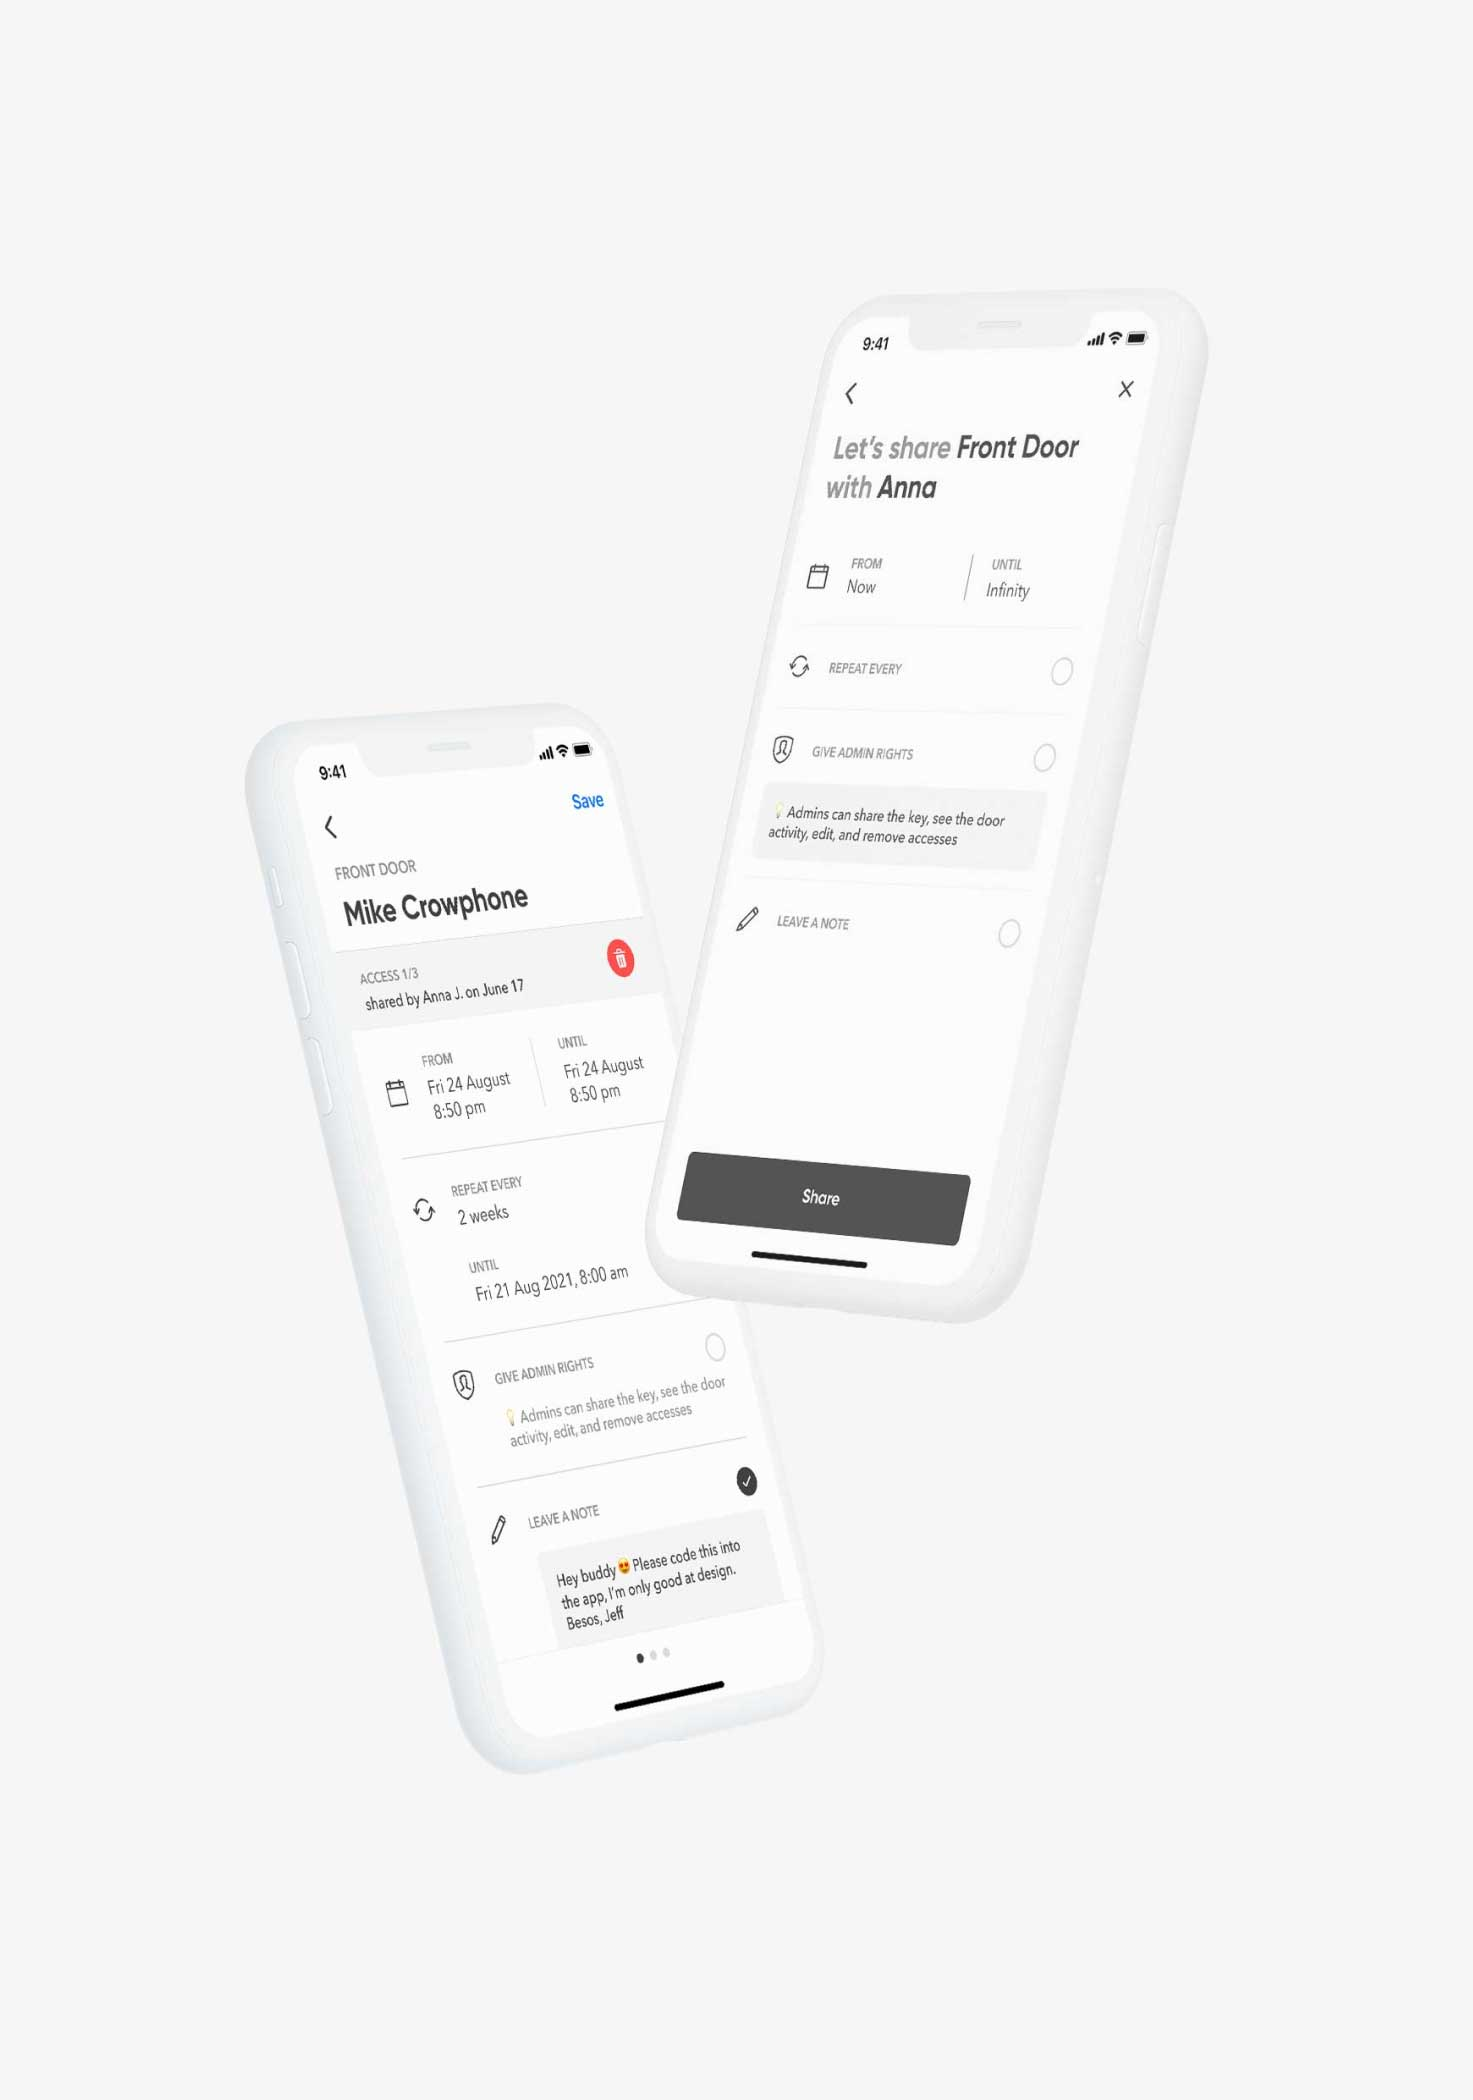 BrightLock mobile app showing sharing access and access details